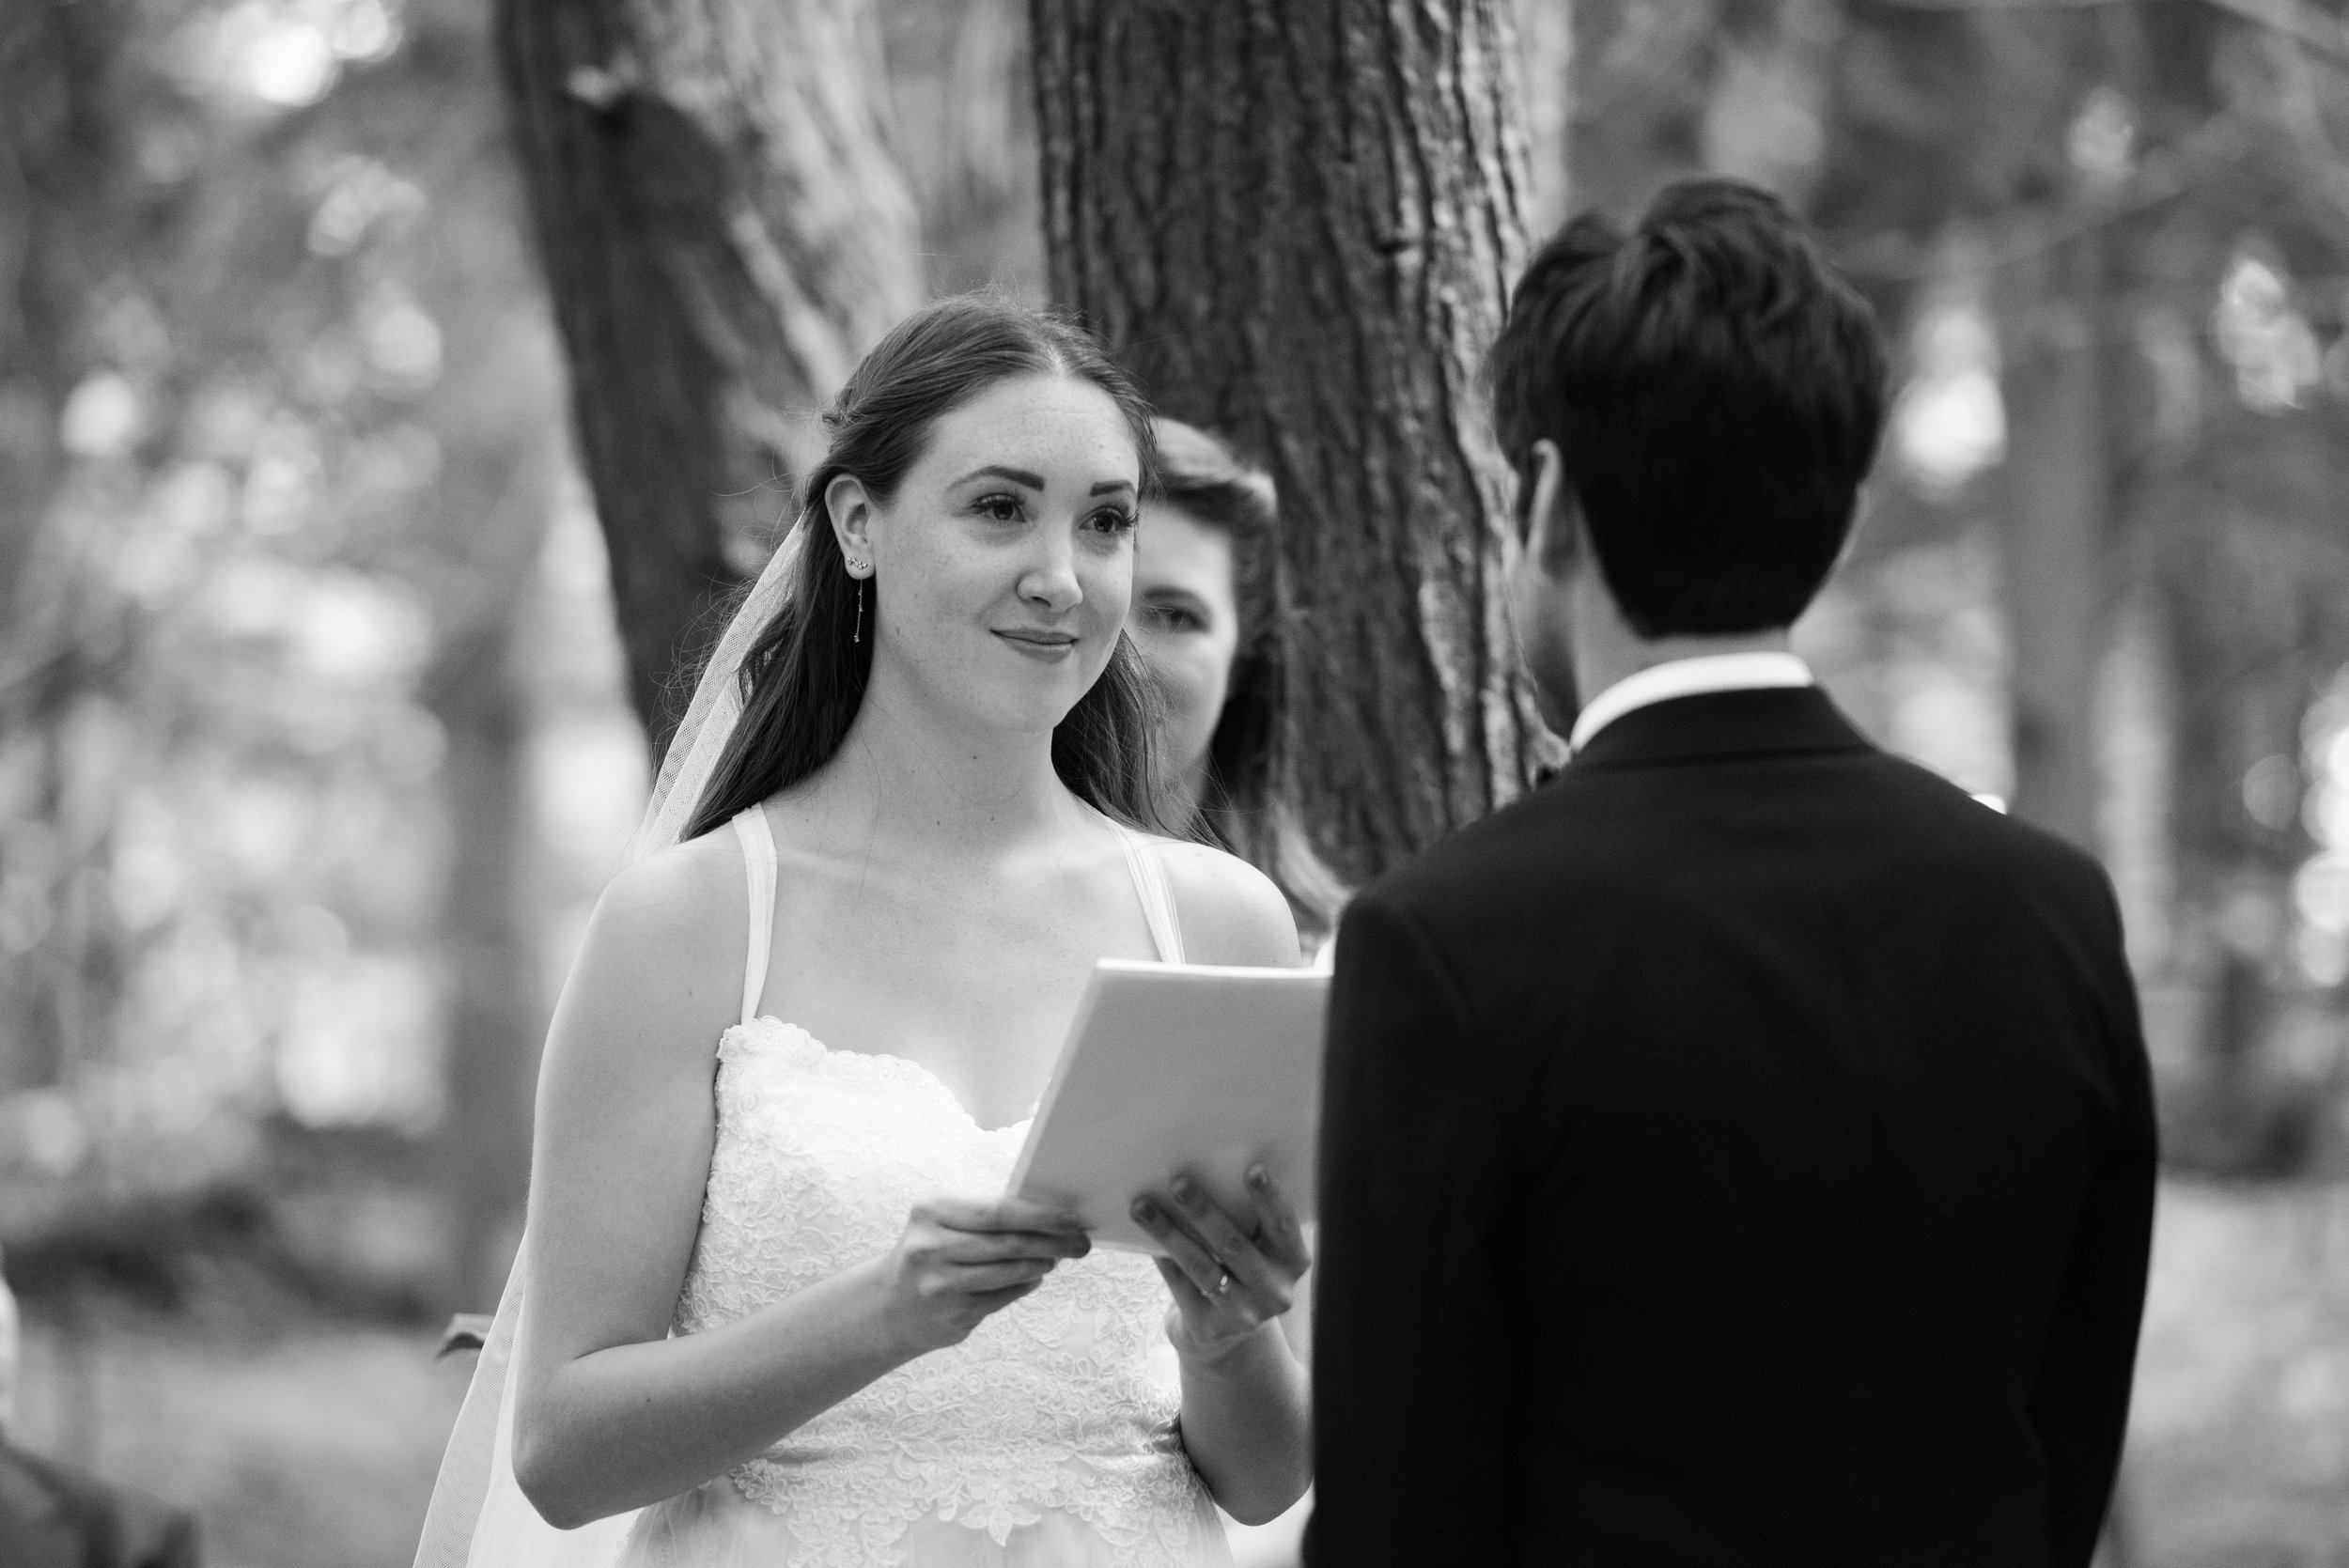 The bride reads her vows. // Wedding photos by Karmel Kreative // Plant Based Bride